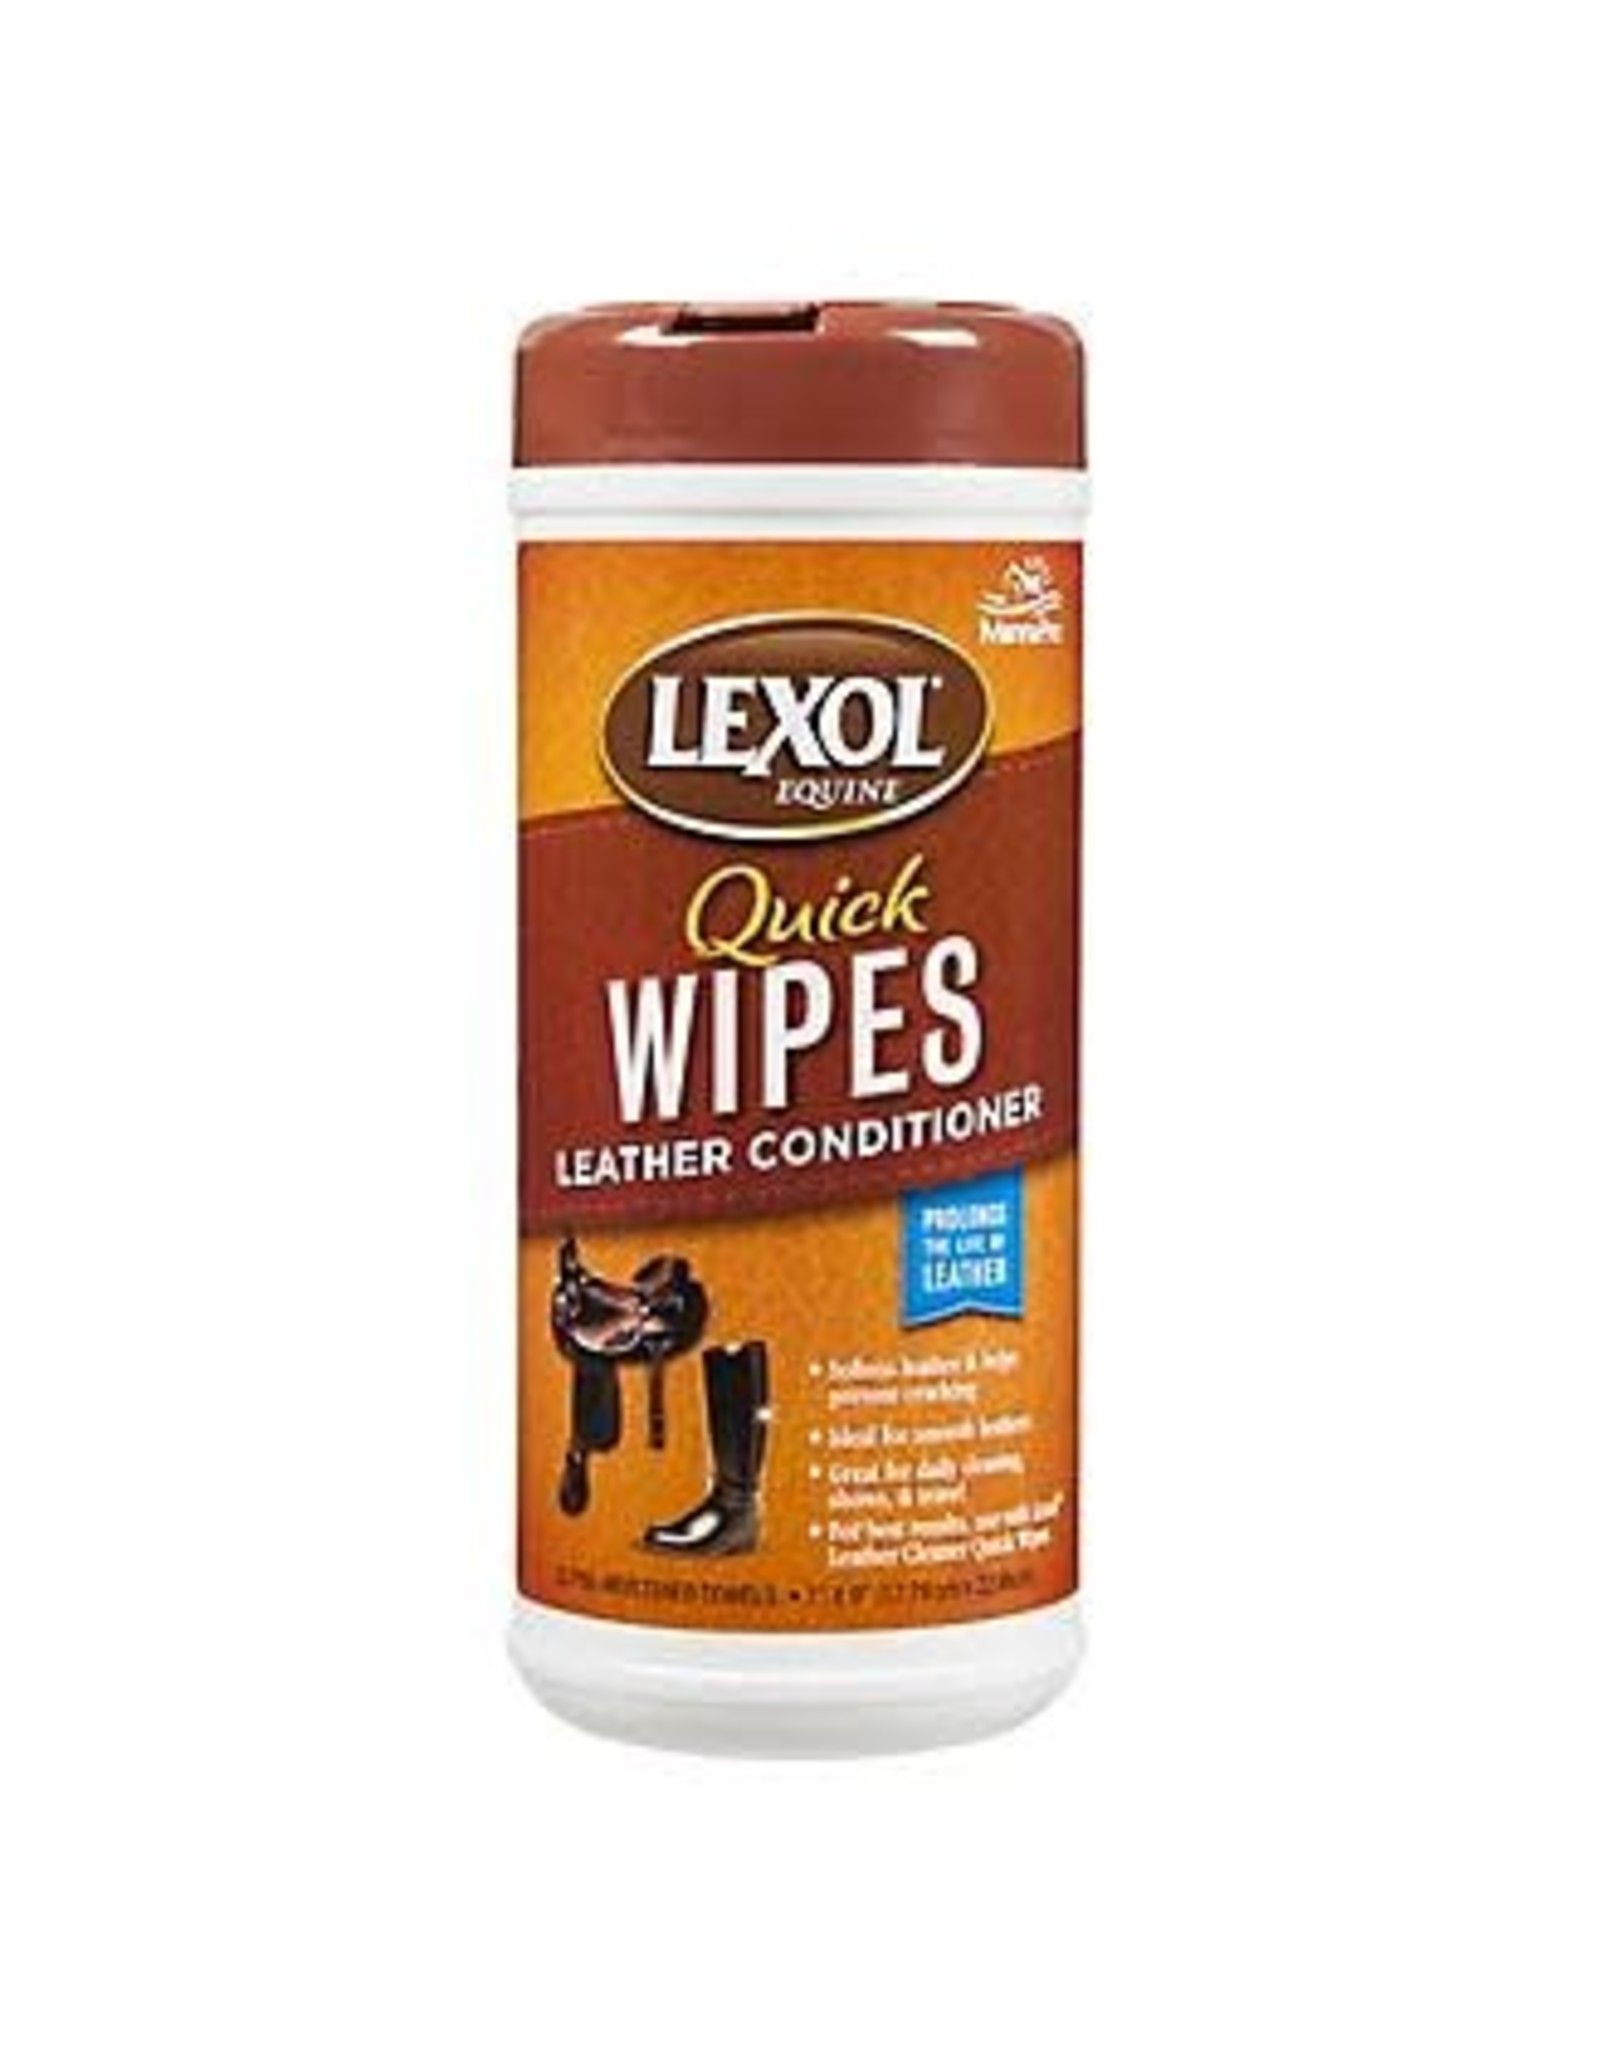 Lexol Leather Conditioner Wipes